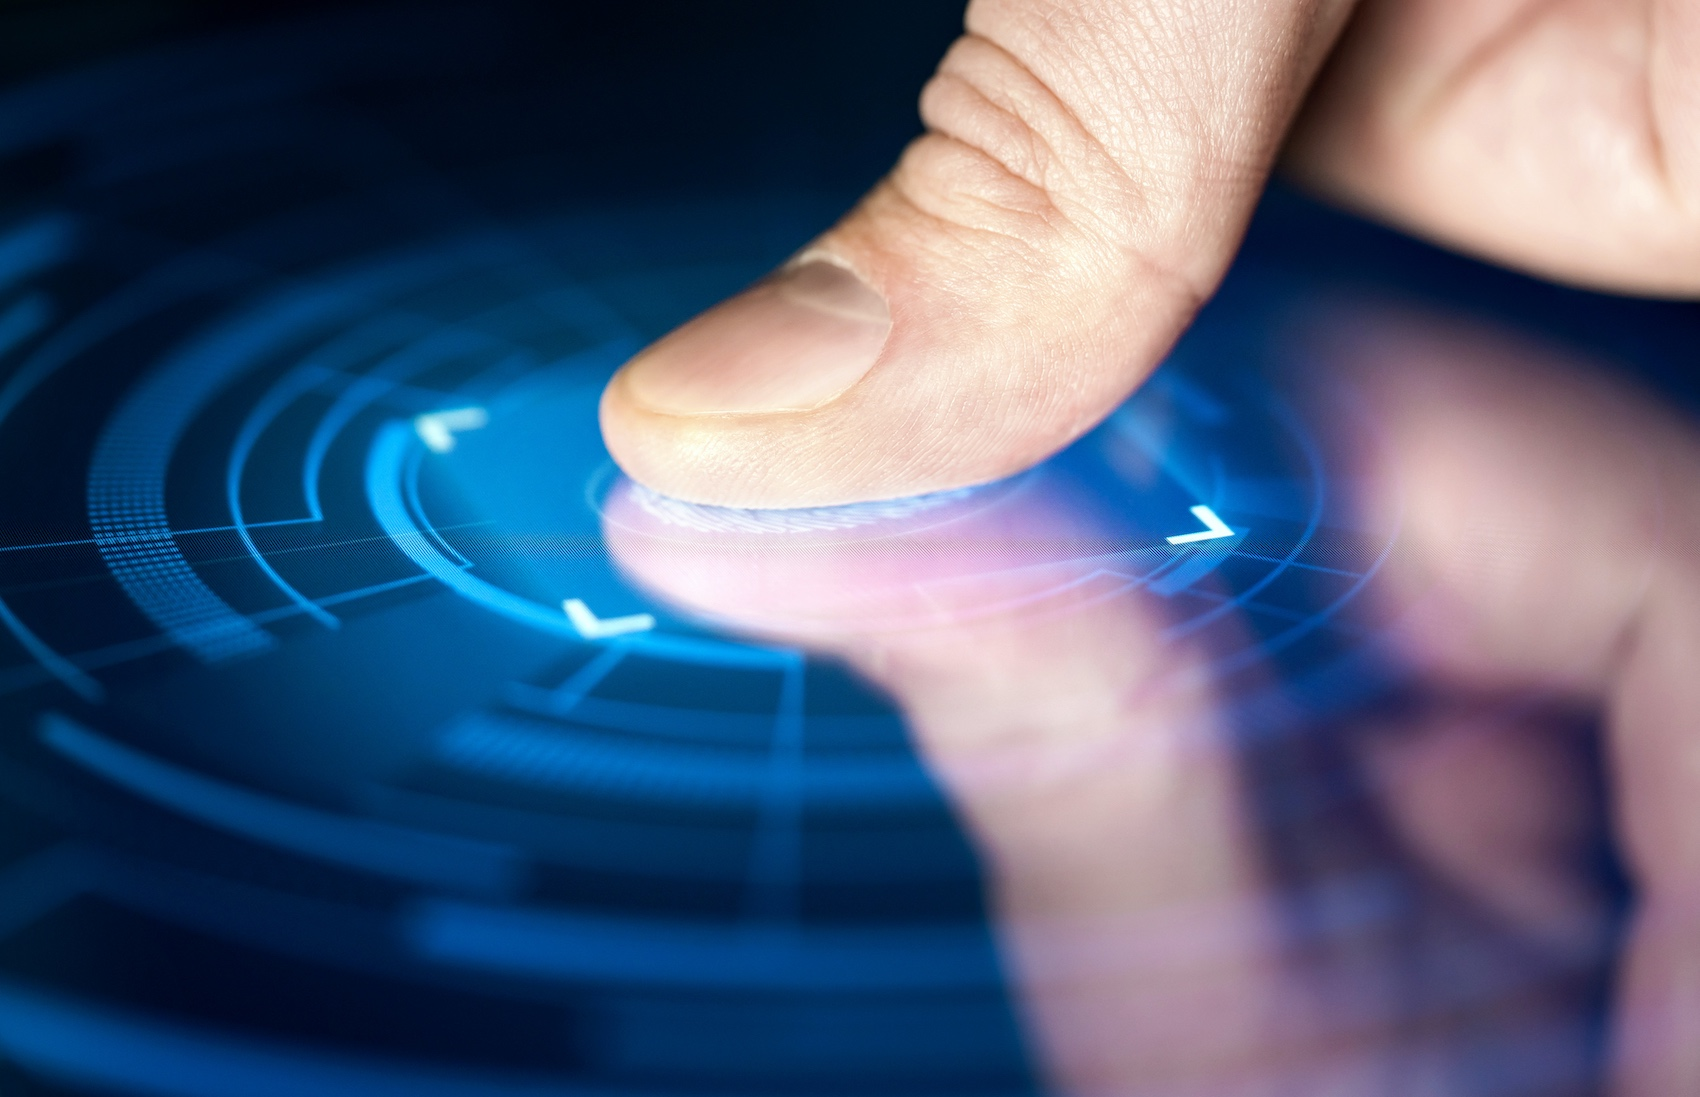 The city built for you: how biometric identity will drive personal security in smart cities